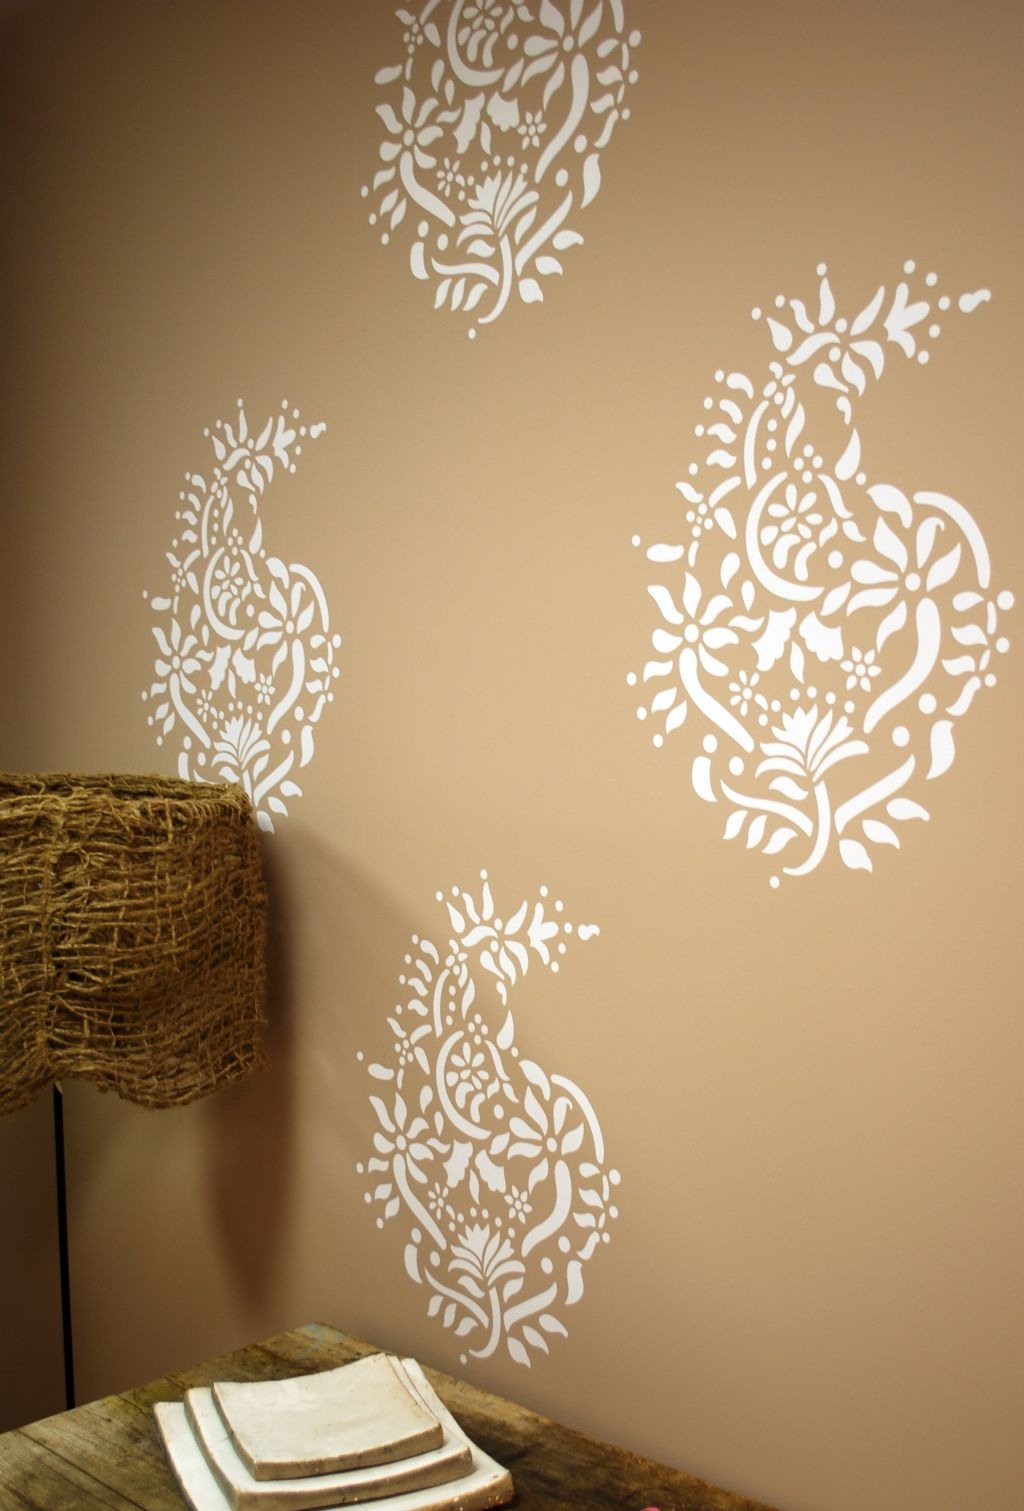 Paisley pattern cool wall painting designs for Cool wall patterns